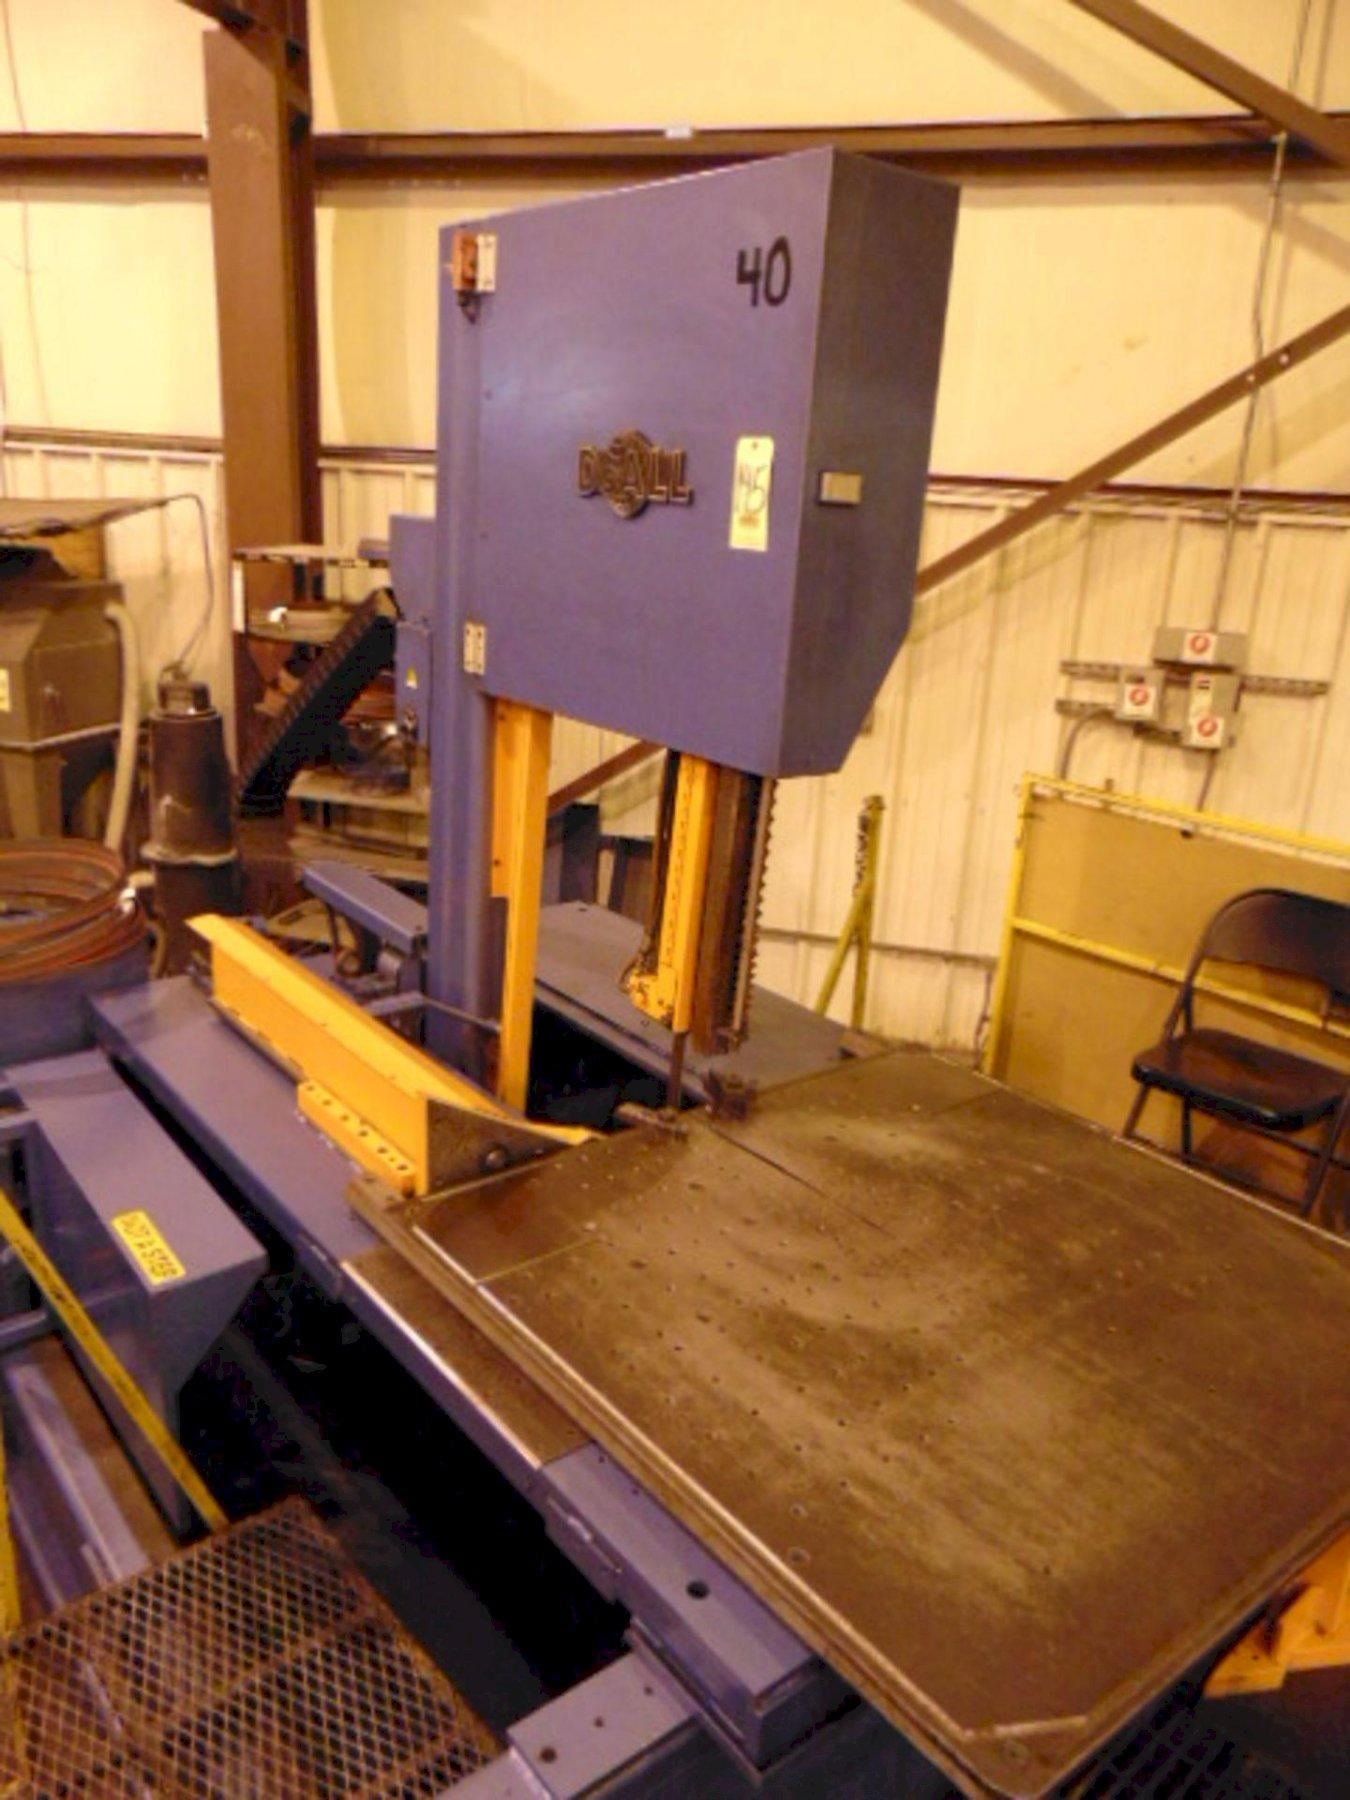 """20"""" x 25"""" DOALL VERTICAL BAND SAW, Model TF- 2025M, Operator Control Station, 20"""" x 25"""" Rectangular Capacity, 20"""" Round Capacity, Power Feed, Power Tilt (60°), Variable Speed Blade, New 2008."""